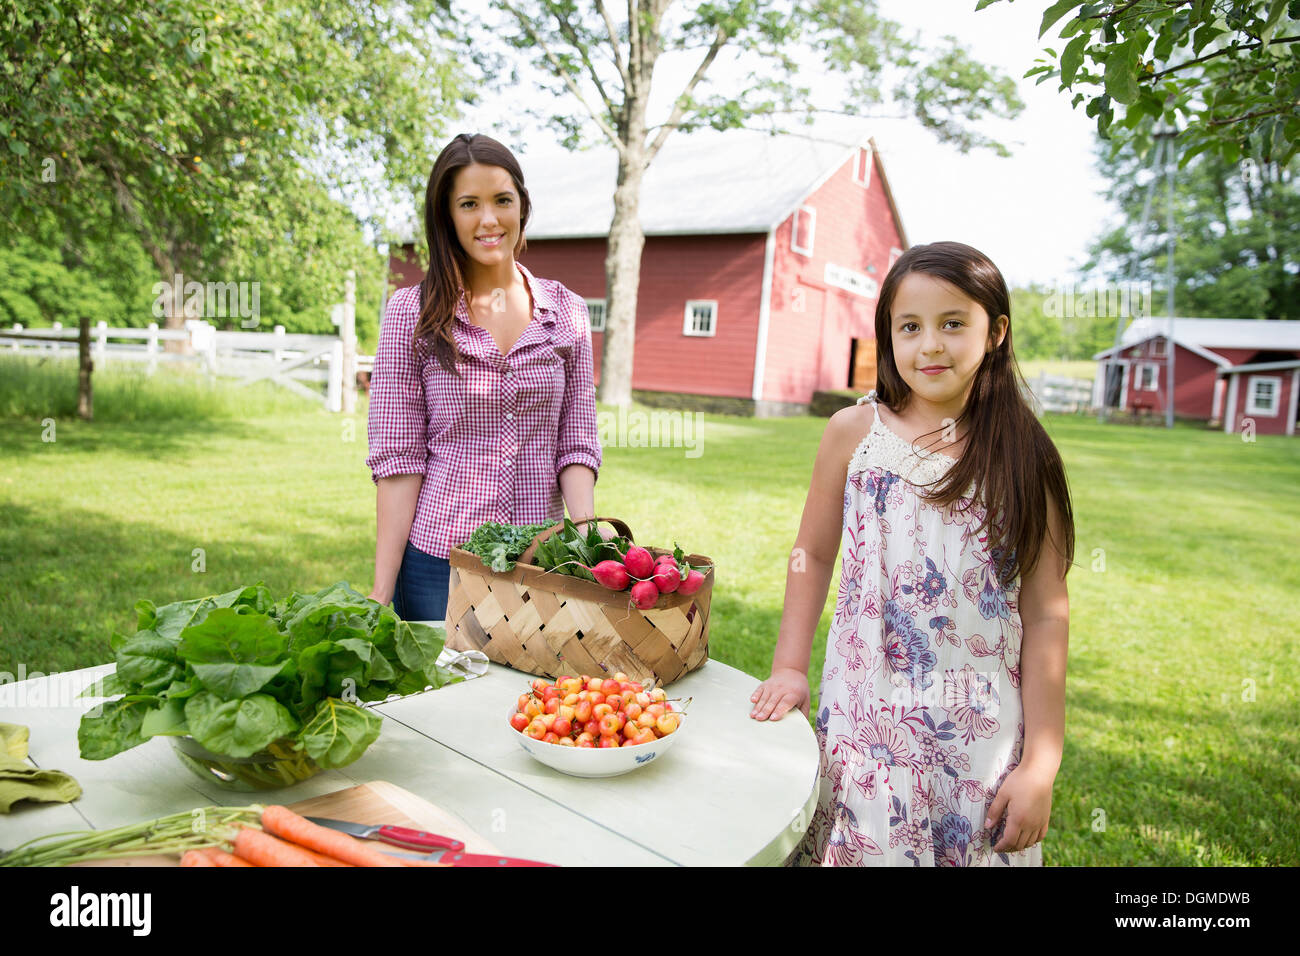 Family party. Two people, girls, standing beside a table set for a summer meal. - Stock Image